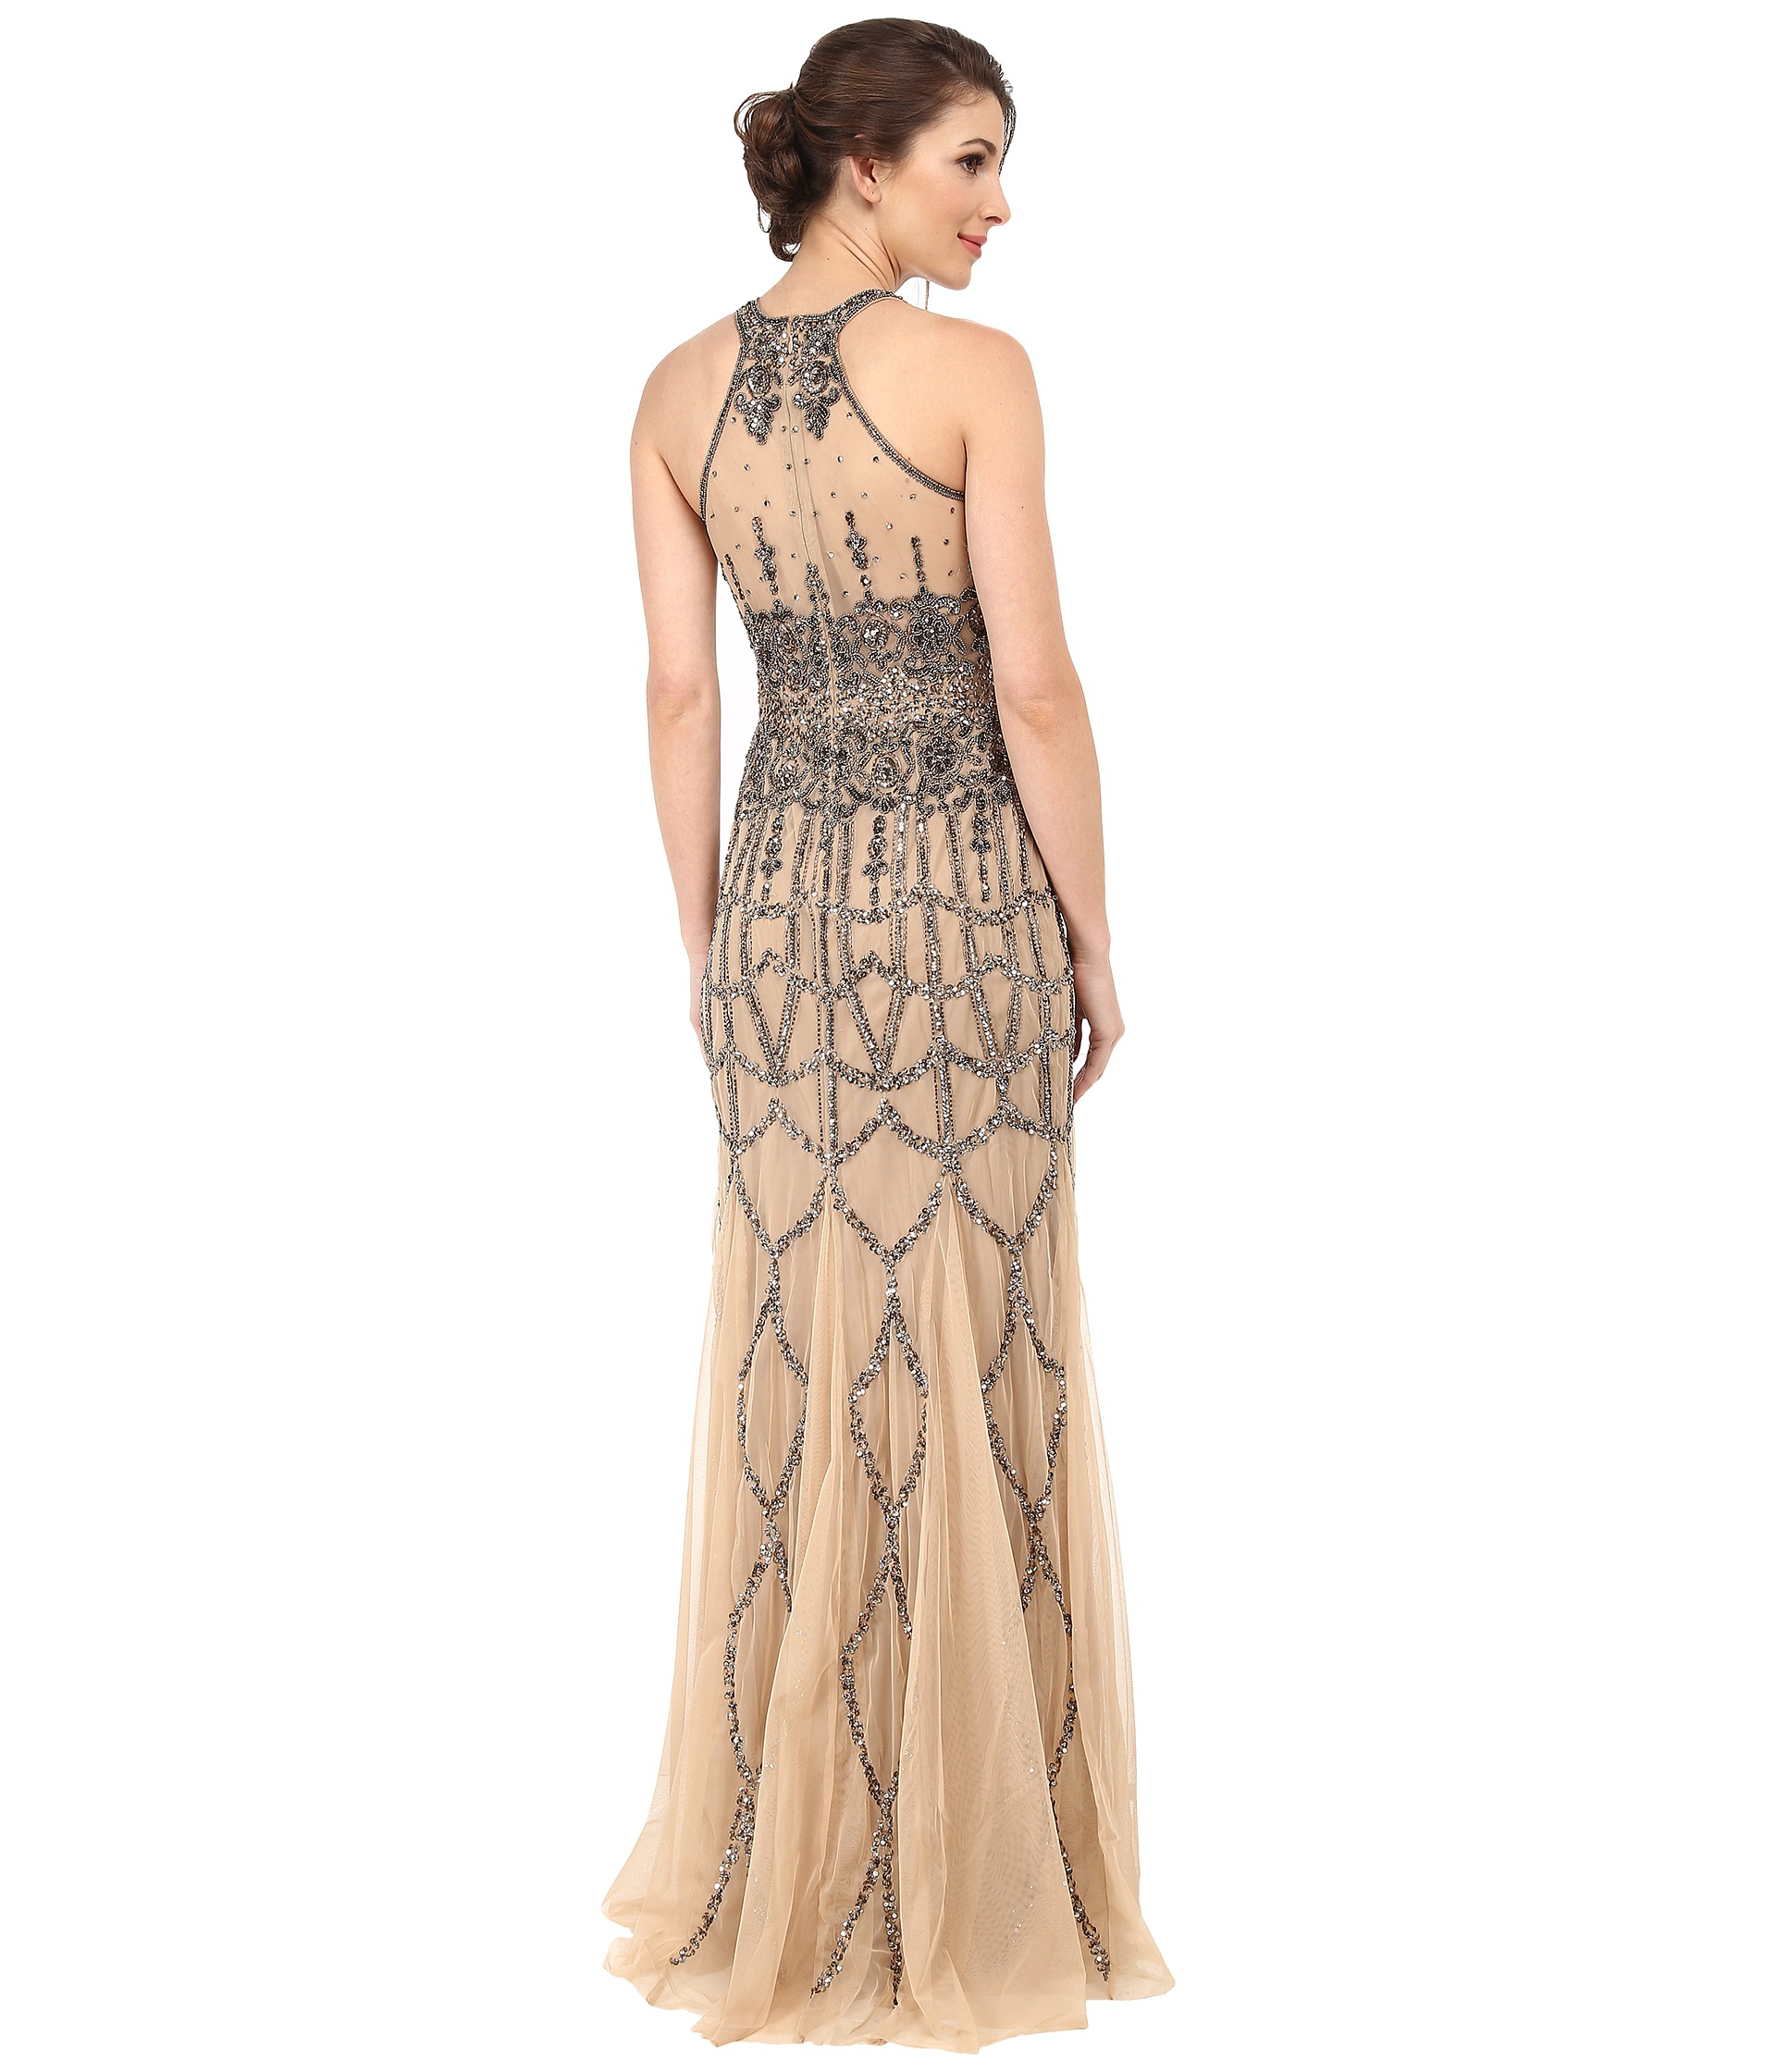 Lyst - Adrianna Papell Sleeveless Fully Beaded Gown in Natural